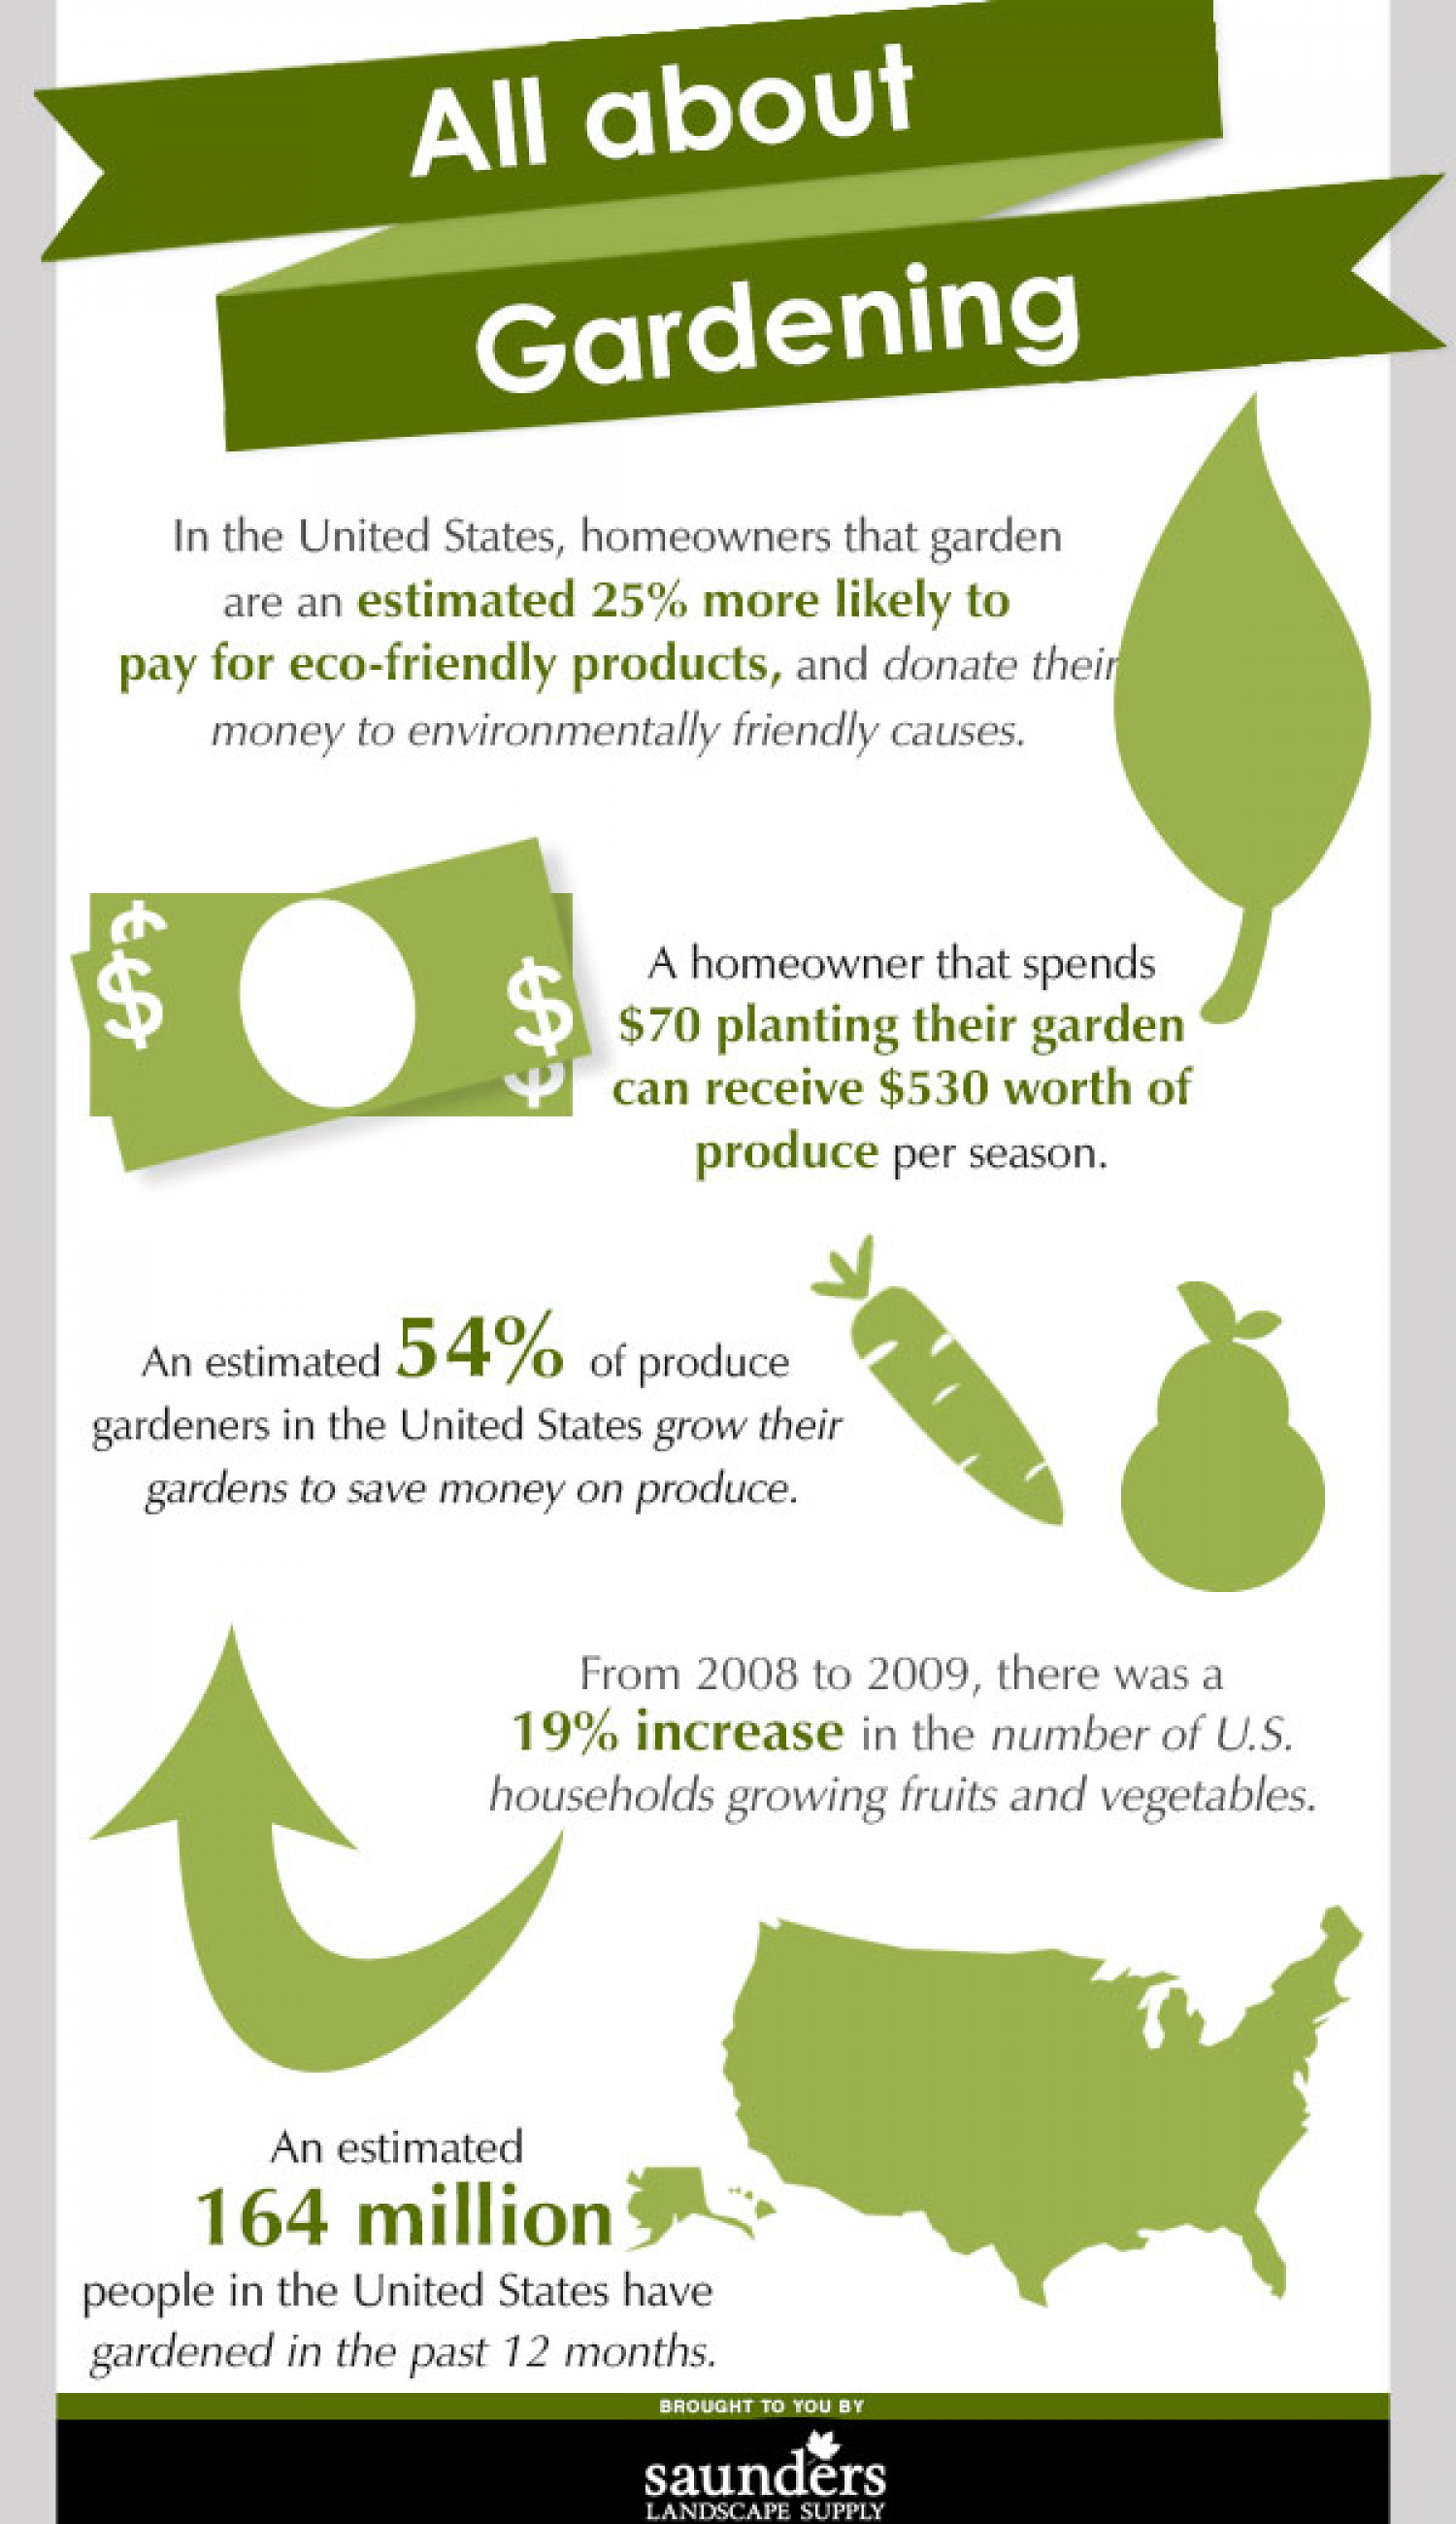 All About Gardening Infographic